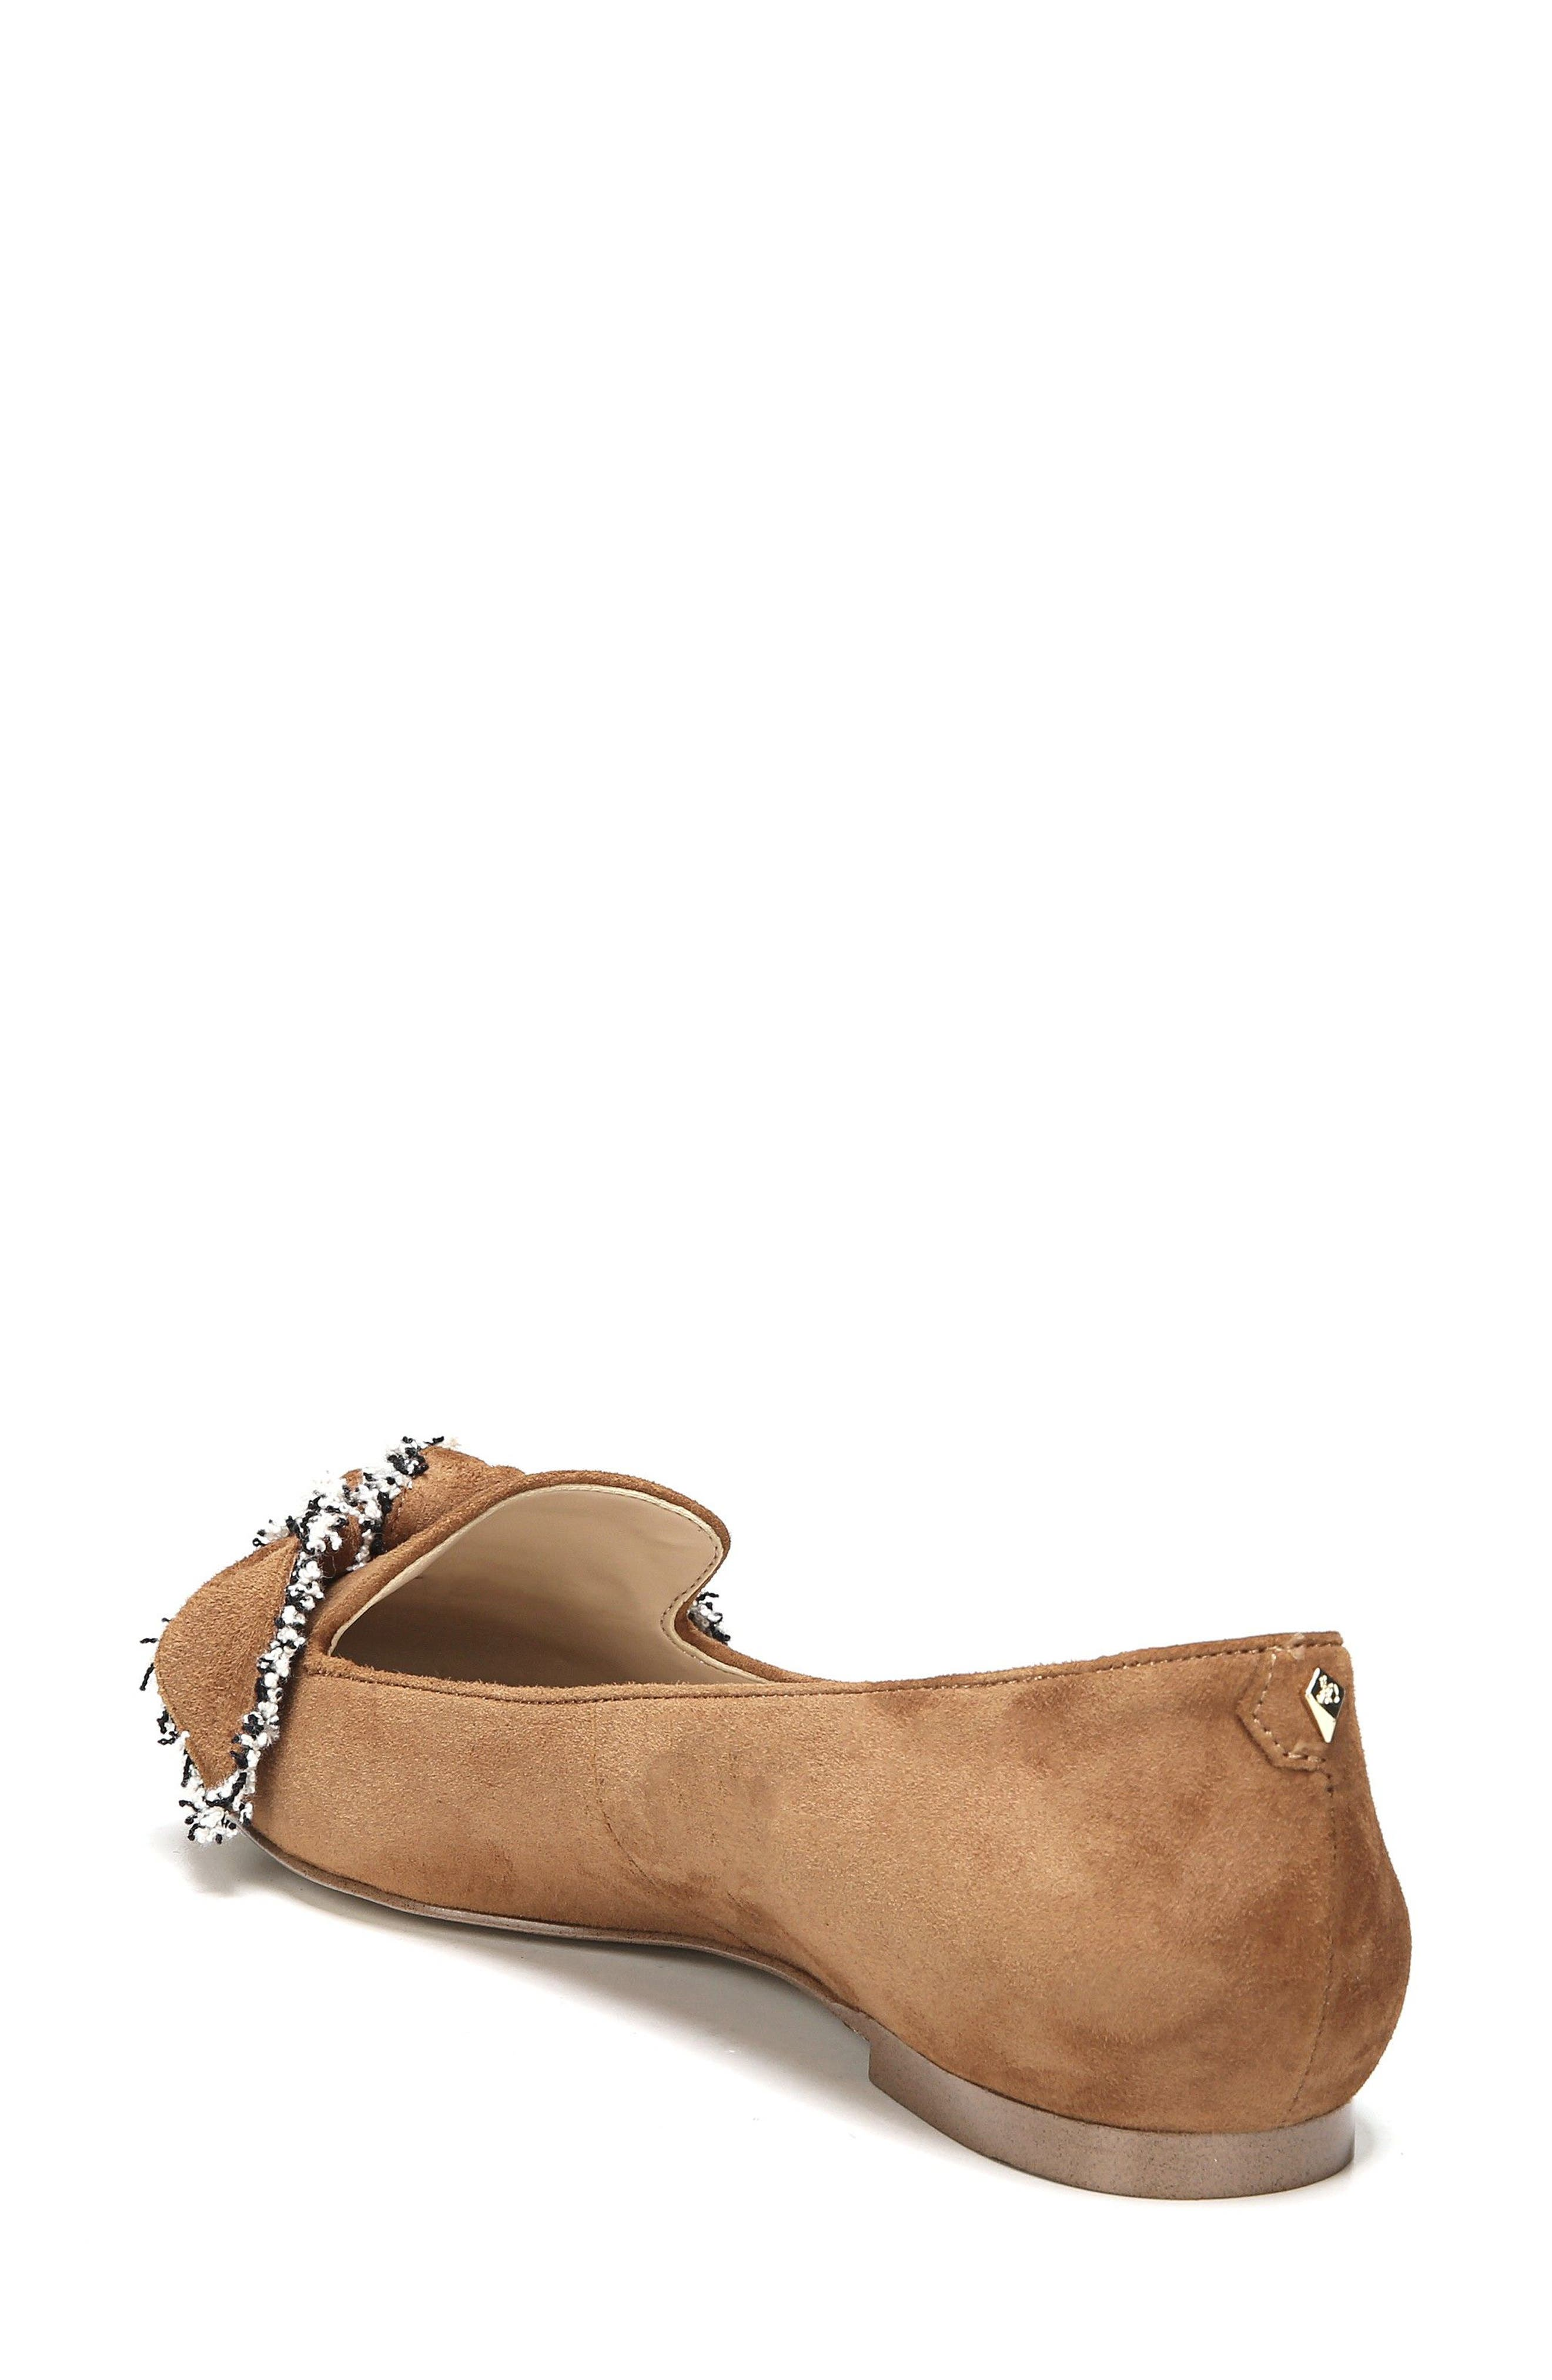 Rochester Bow Pointy Toe Flat,                             Alternate thumbnail 6, color,